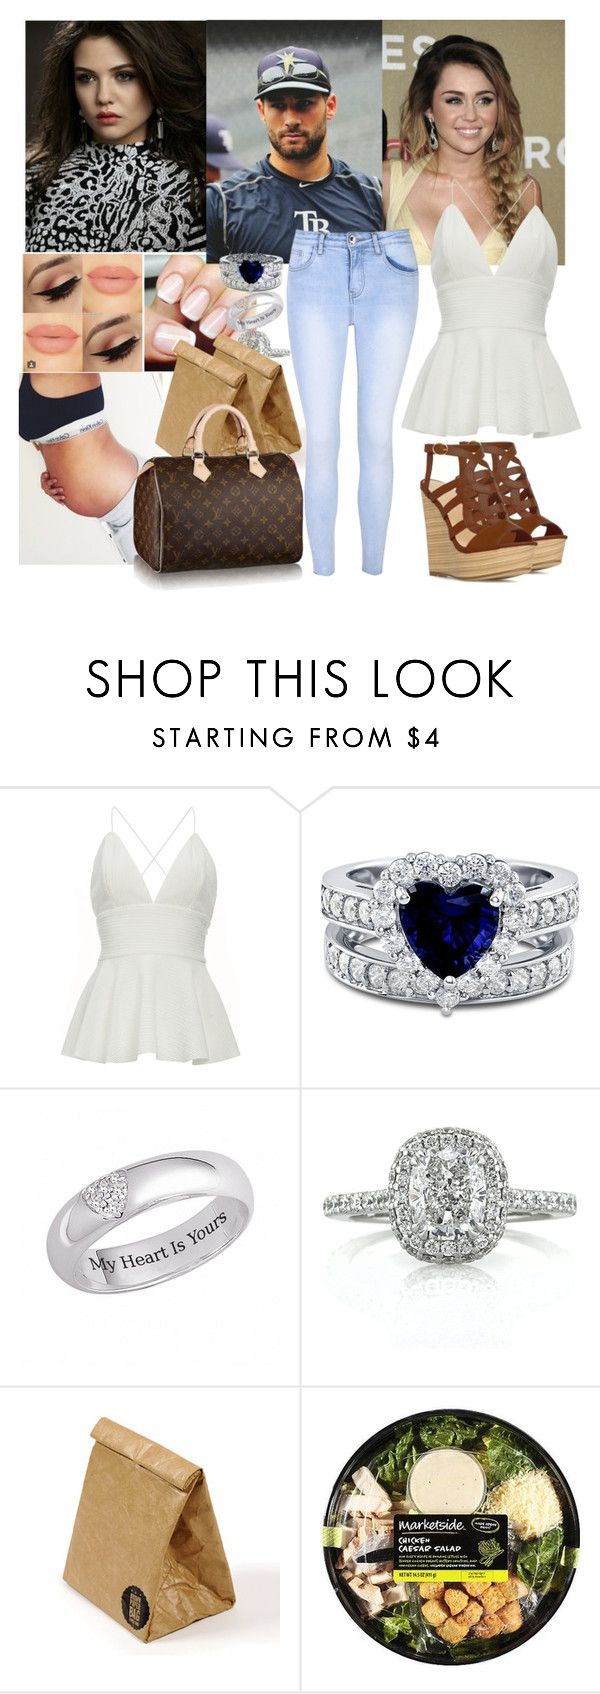 """Surprising Riley and Kevin 💖Carola💖"" by carolalink ❤ liked on Polyvore featuring Cyrus, BERRICLE, Mark Broumand, Luckies, Glamorous and Louis Vuitton"